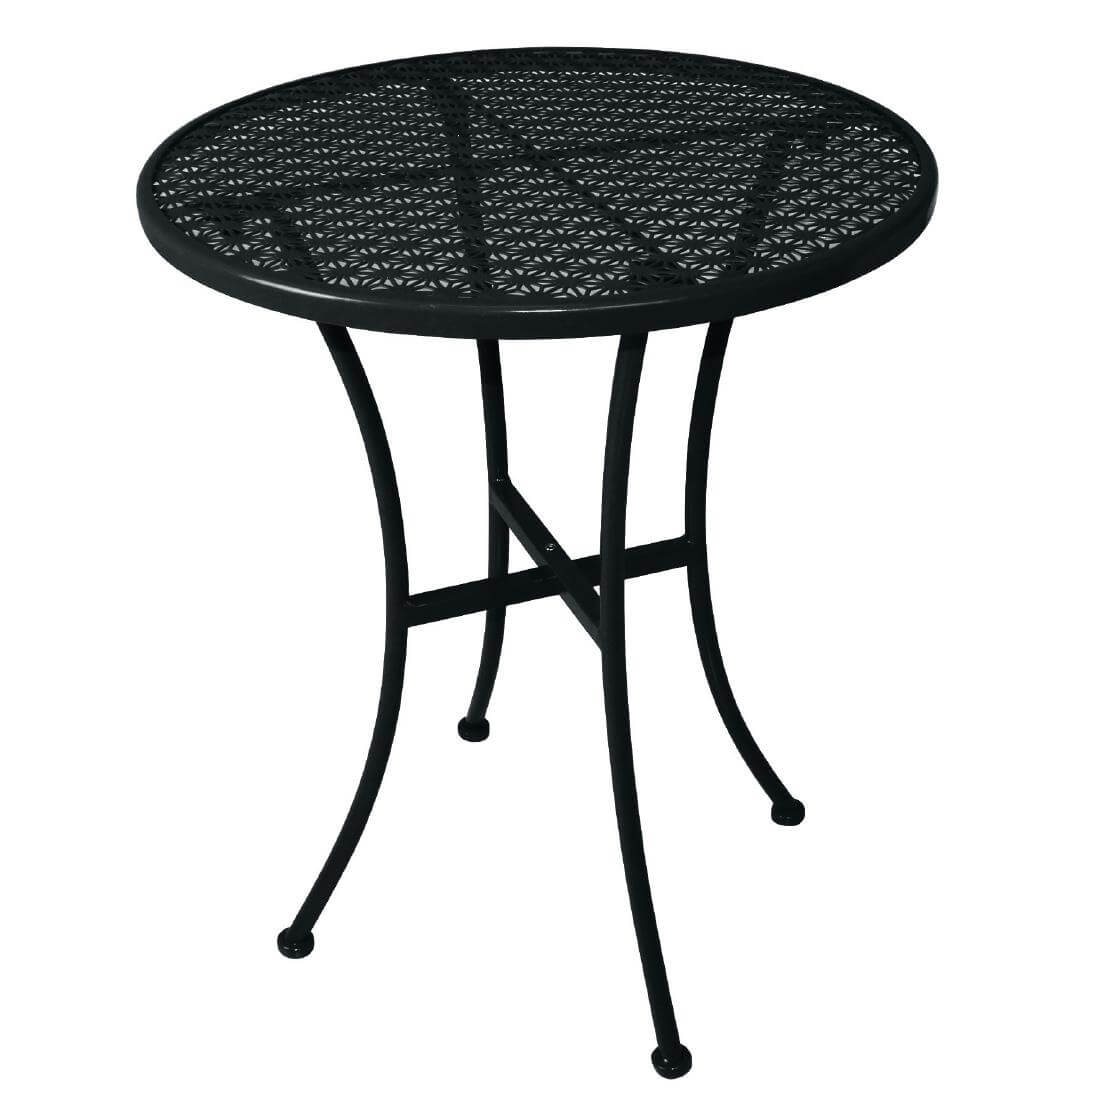 Steel Patterned Round Table - Black